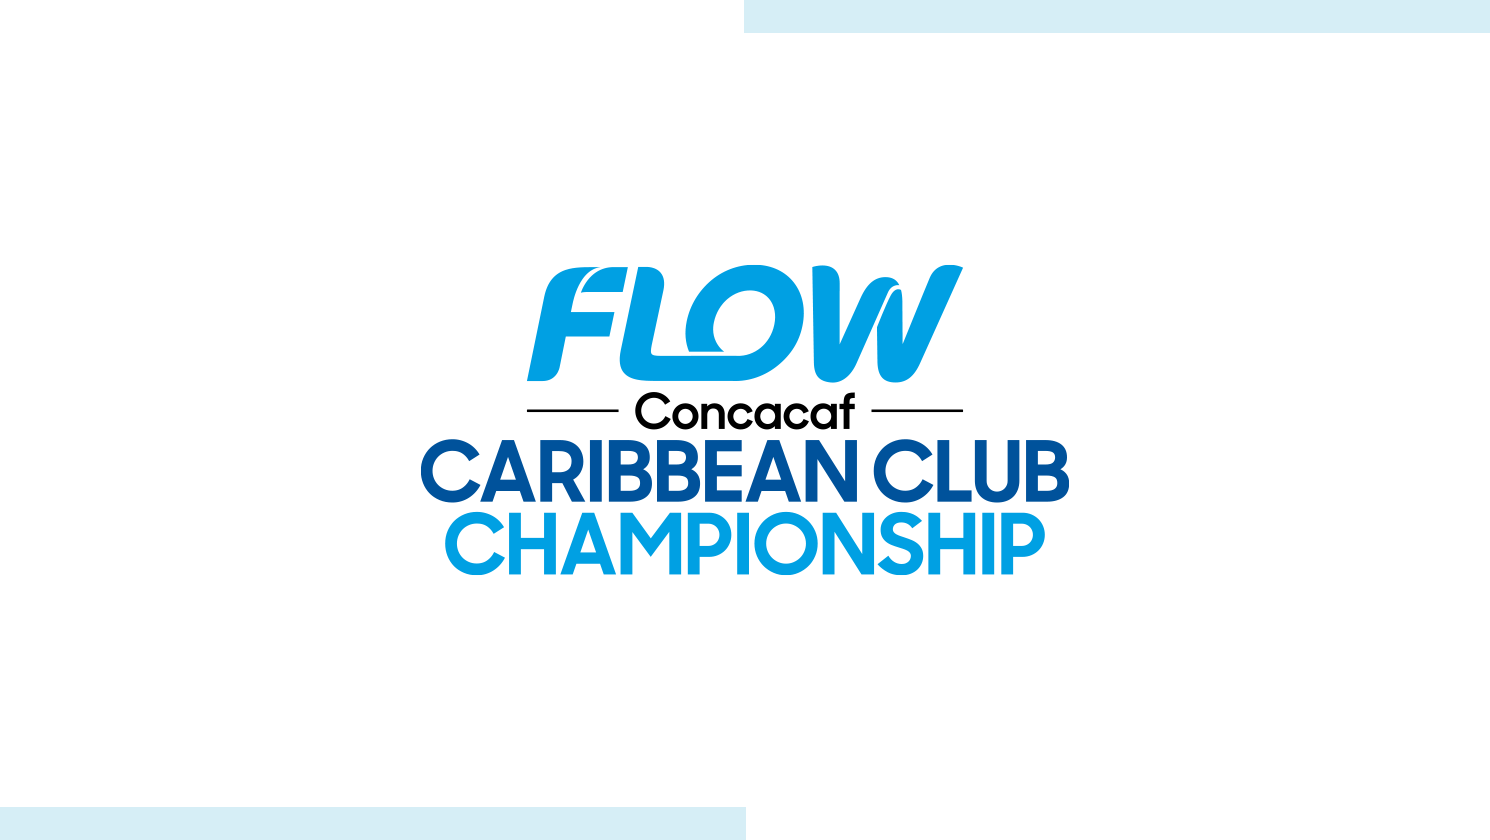 Dominican Republic to Host Finals of 2020 Flow Concacaf Caribbean Club Championship